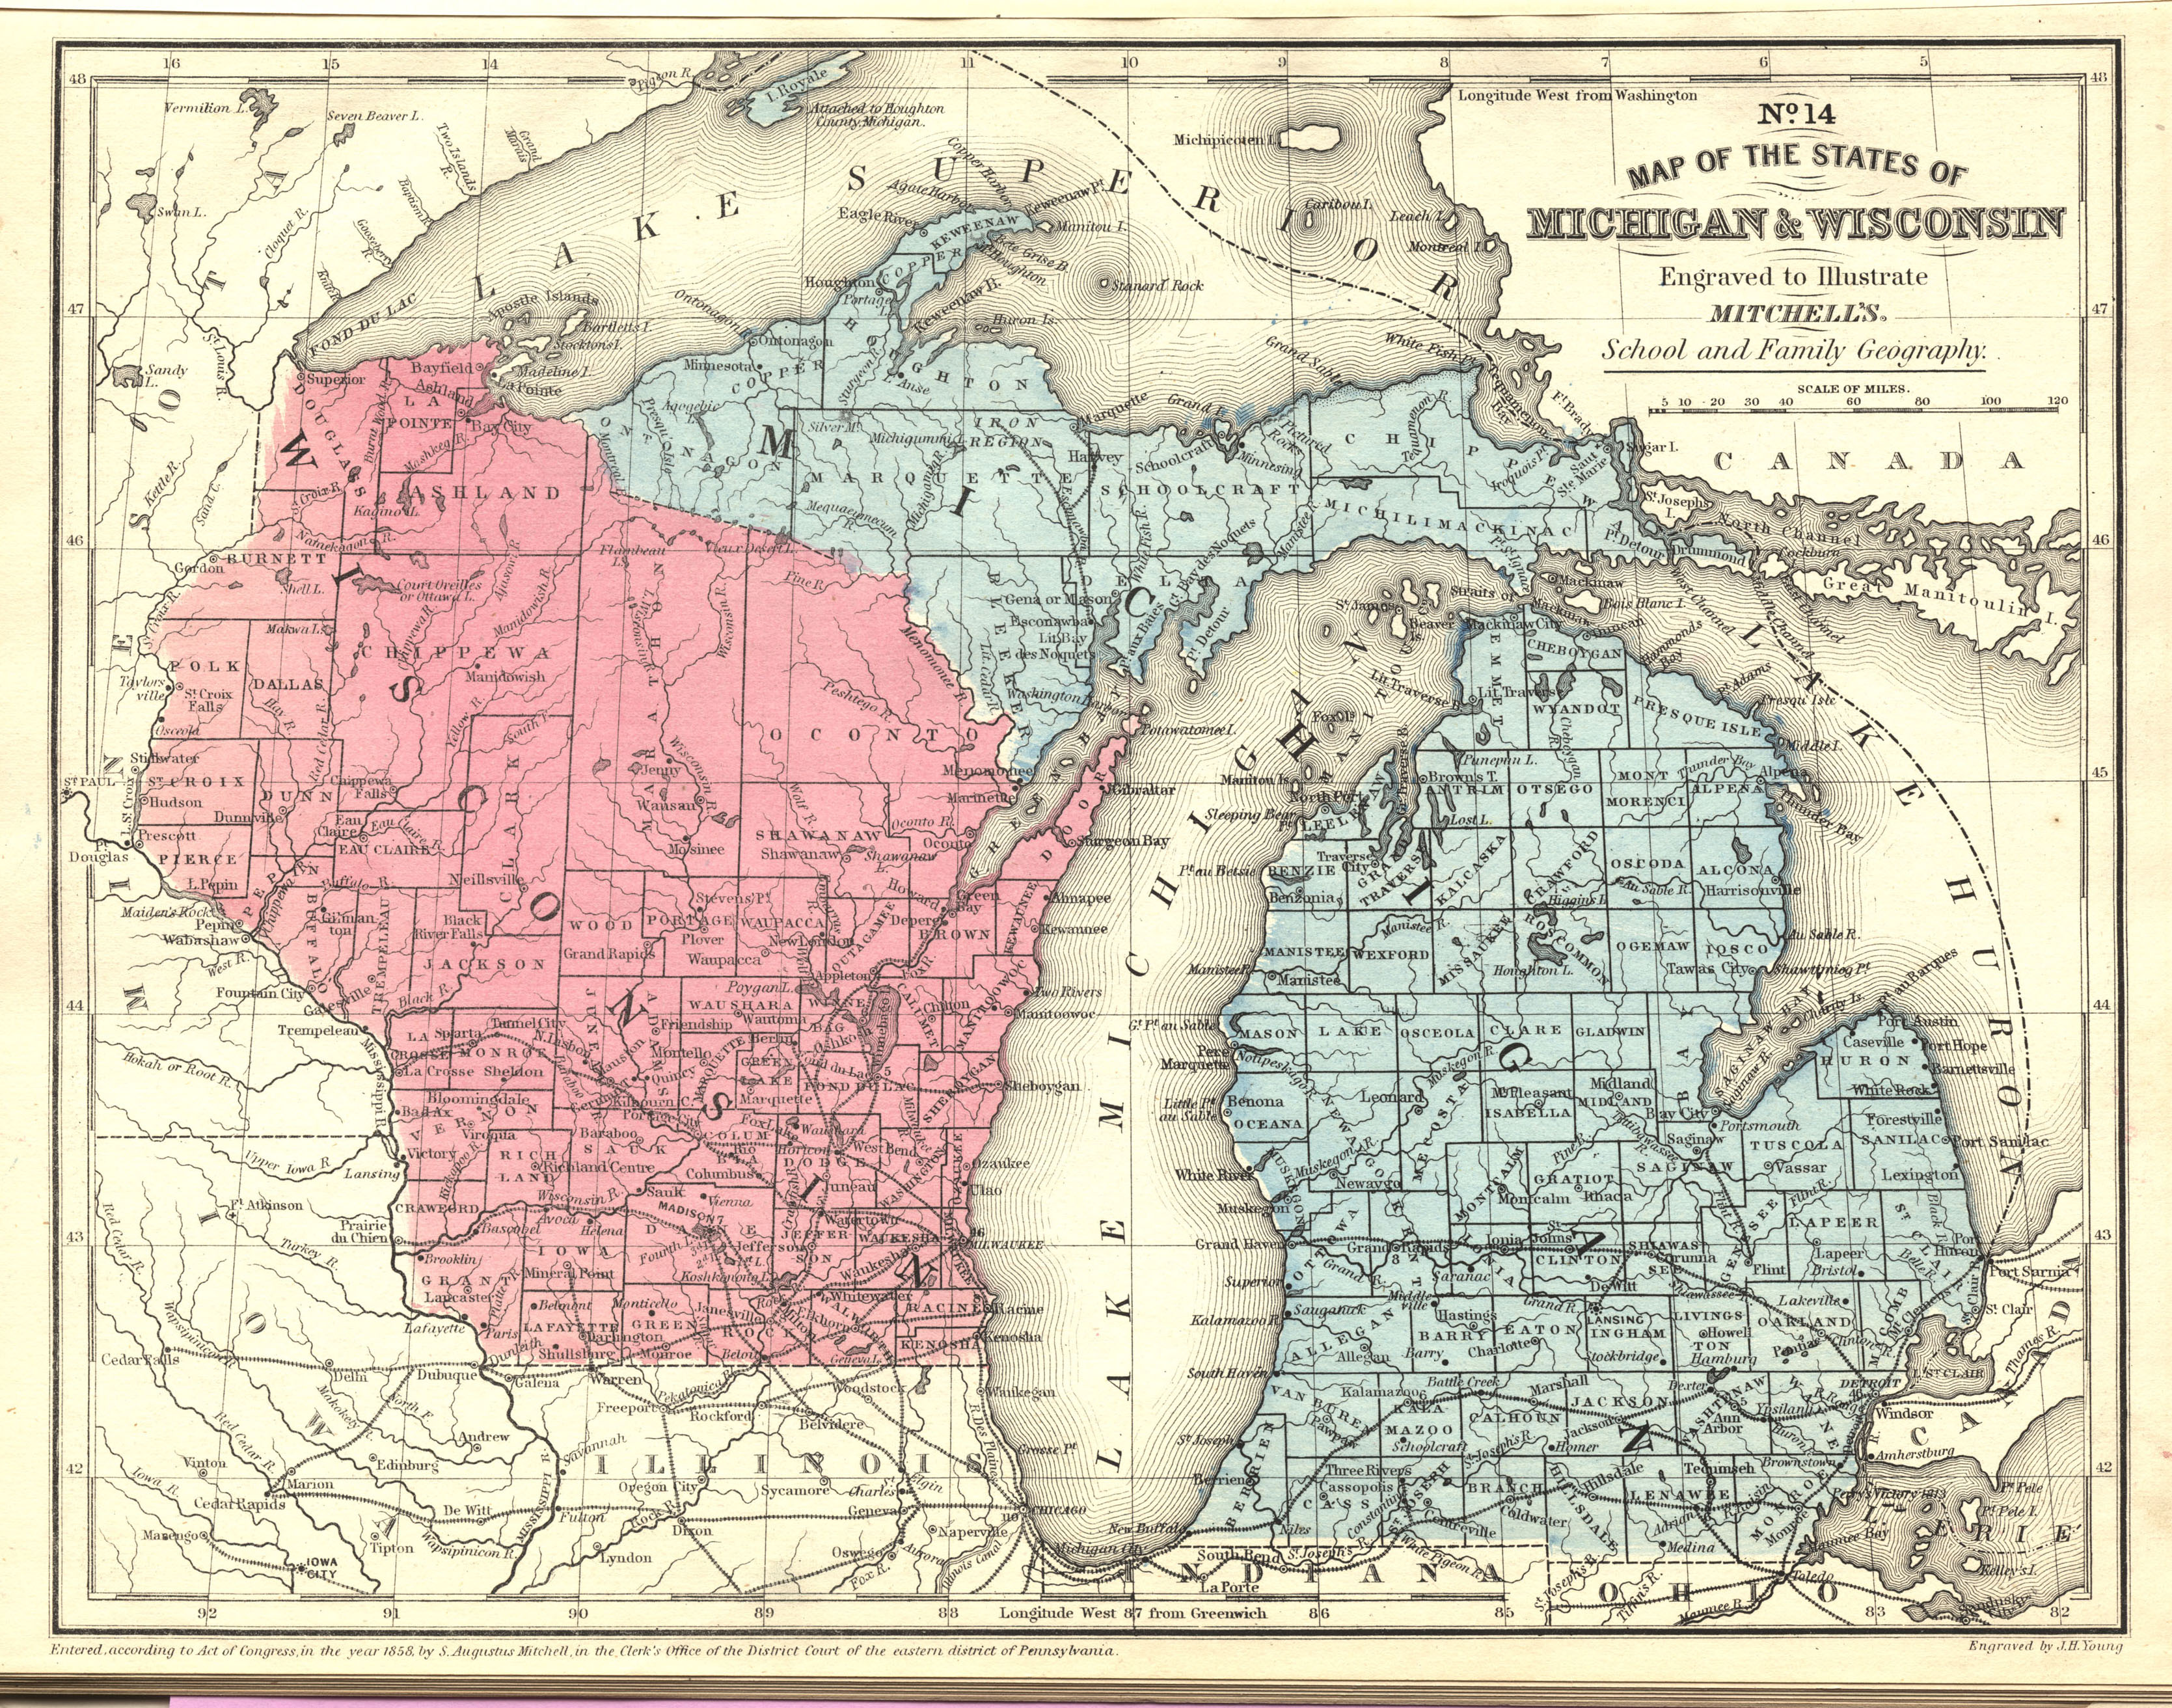 Map of the States of Michigan and Wisconsin, 1866 | Scanned Maps